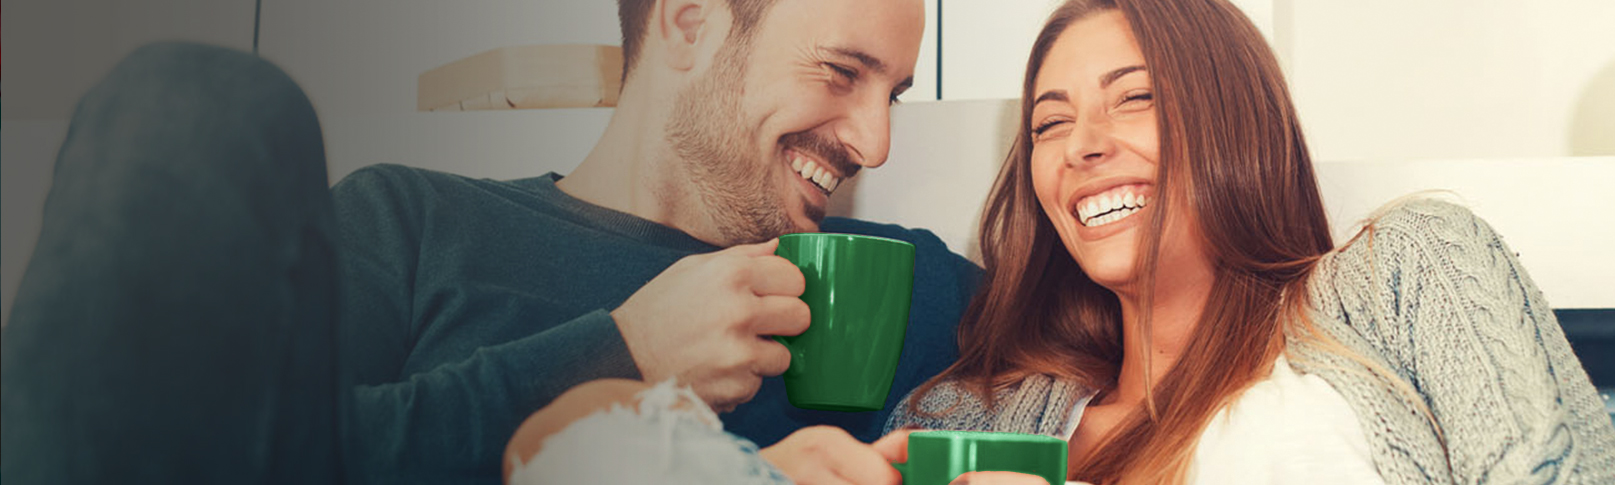 couple on couch laughing with coffee cups